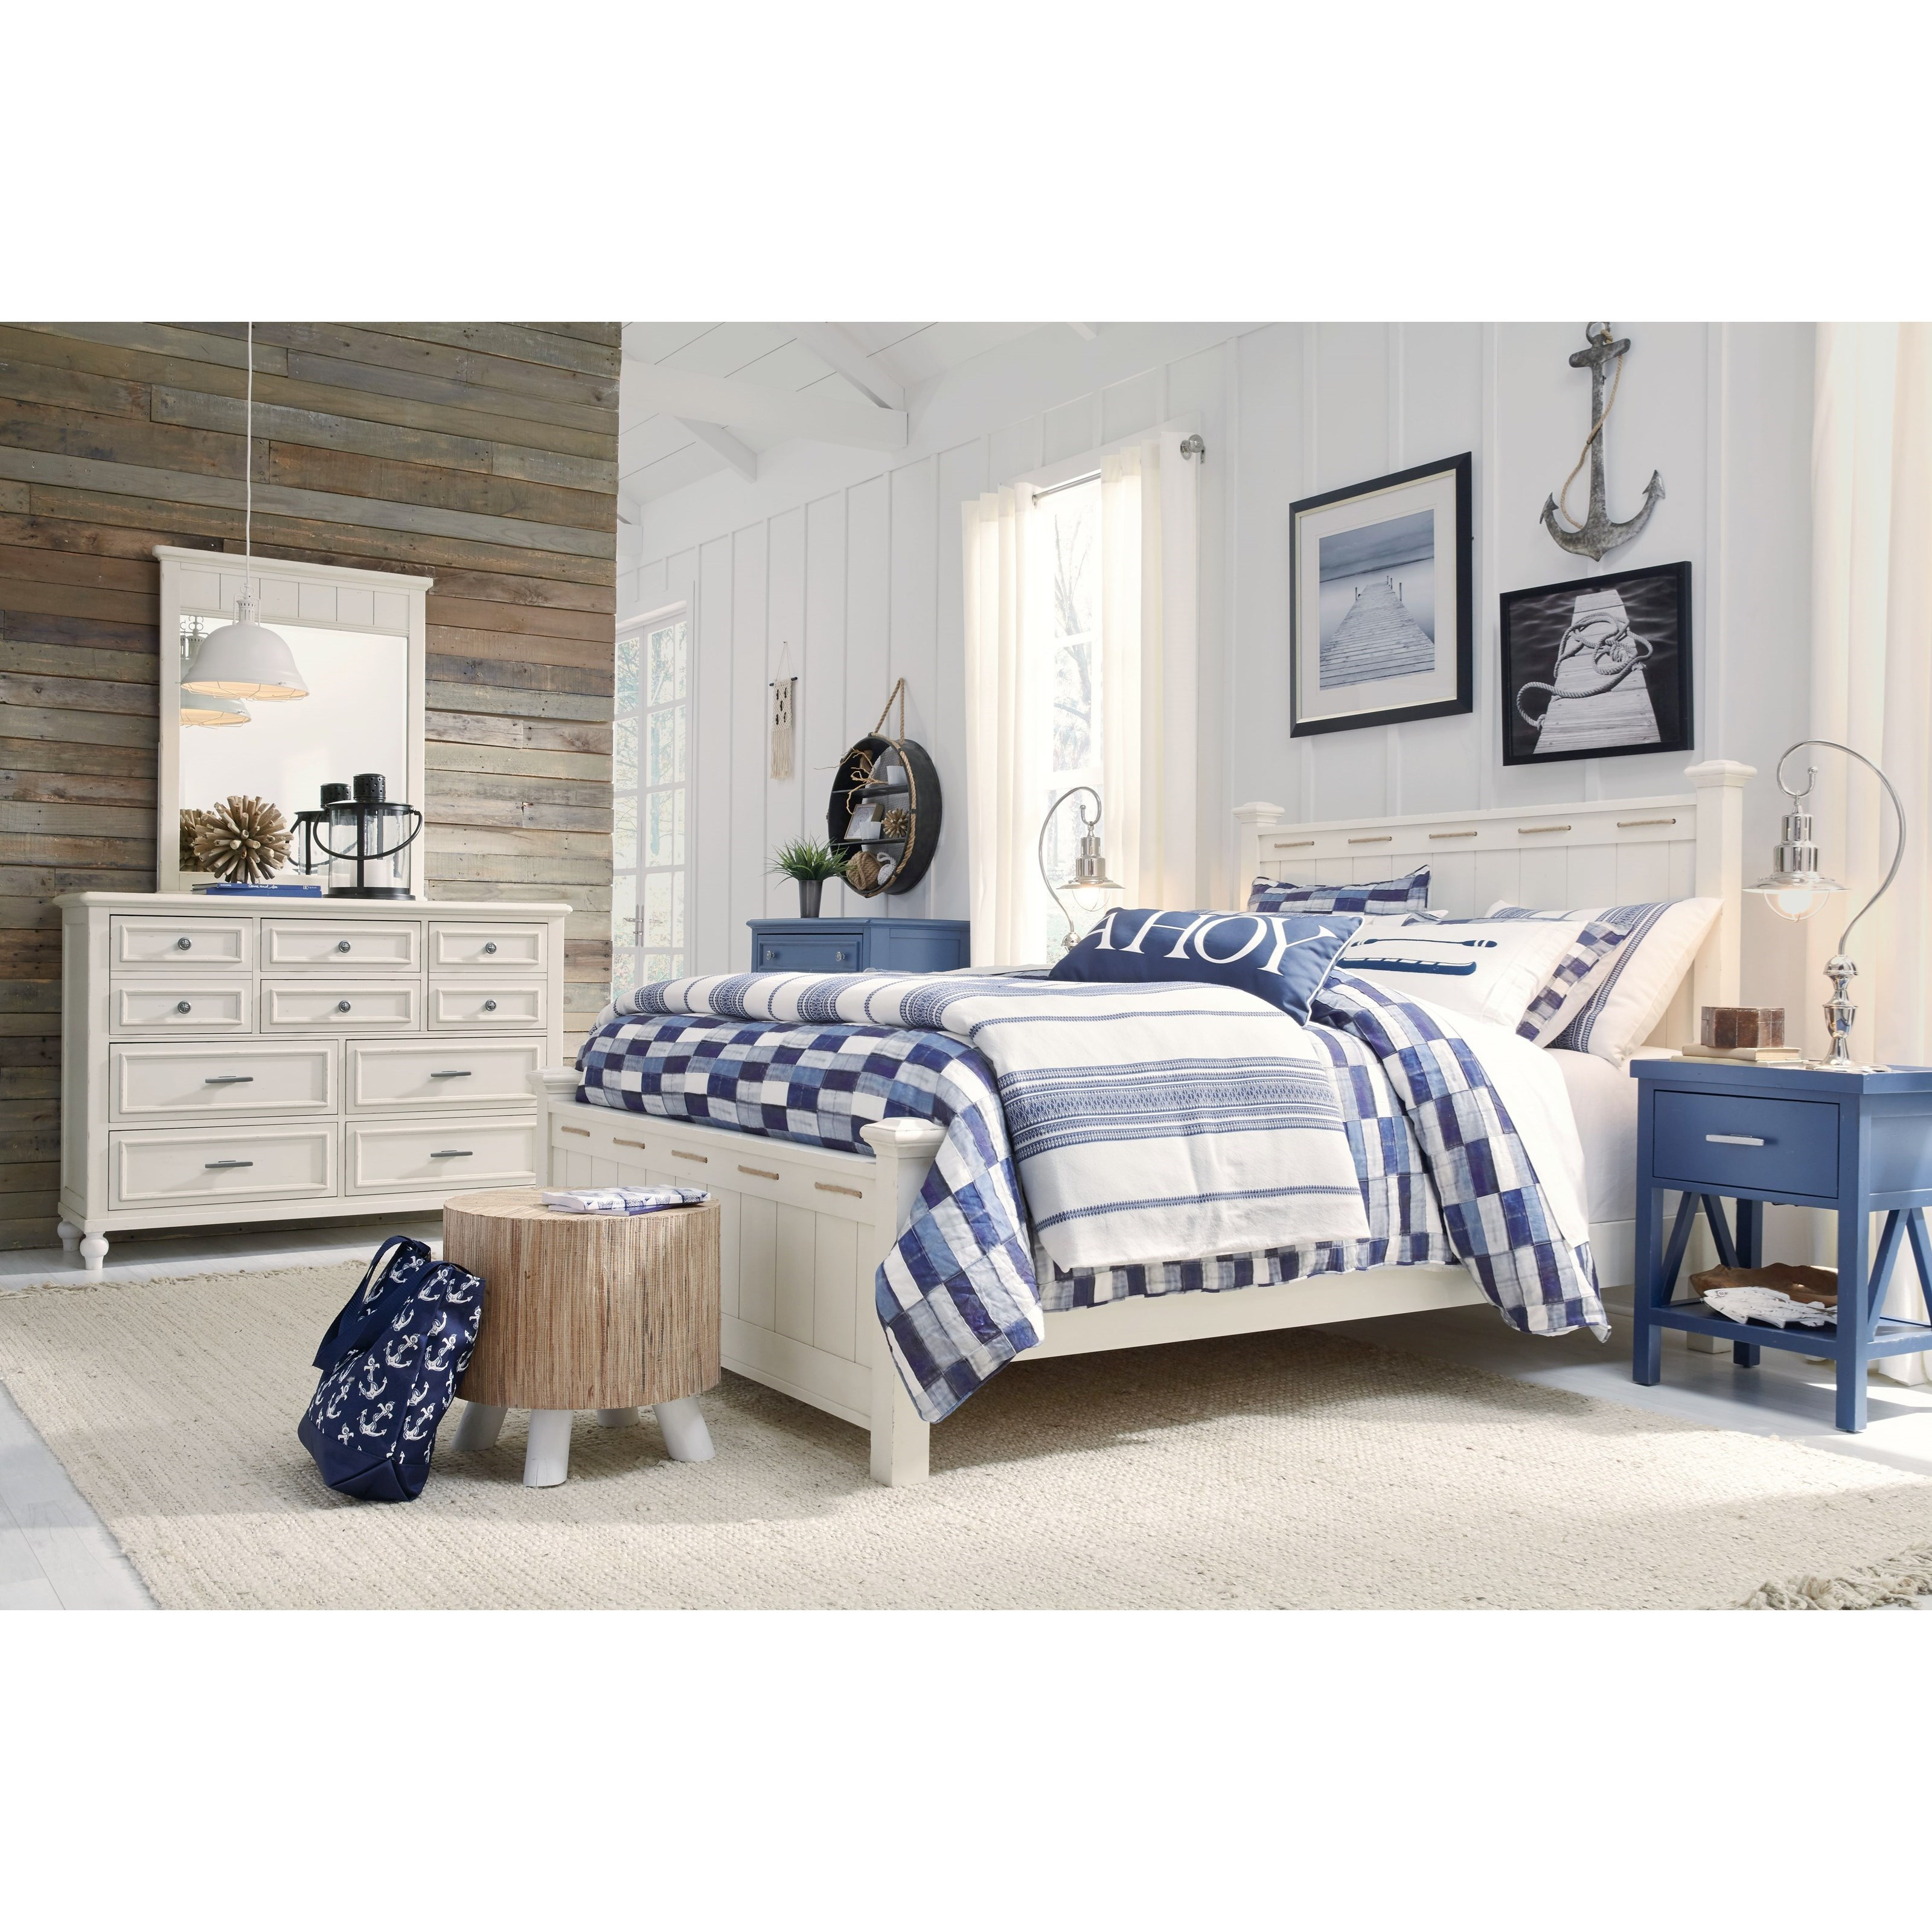 Kids Queen Bed Lake House Queen Bedroom Group By Legacy Classic Kids At Suburban Furniture